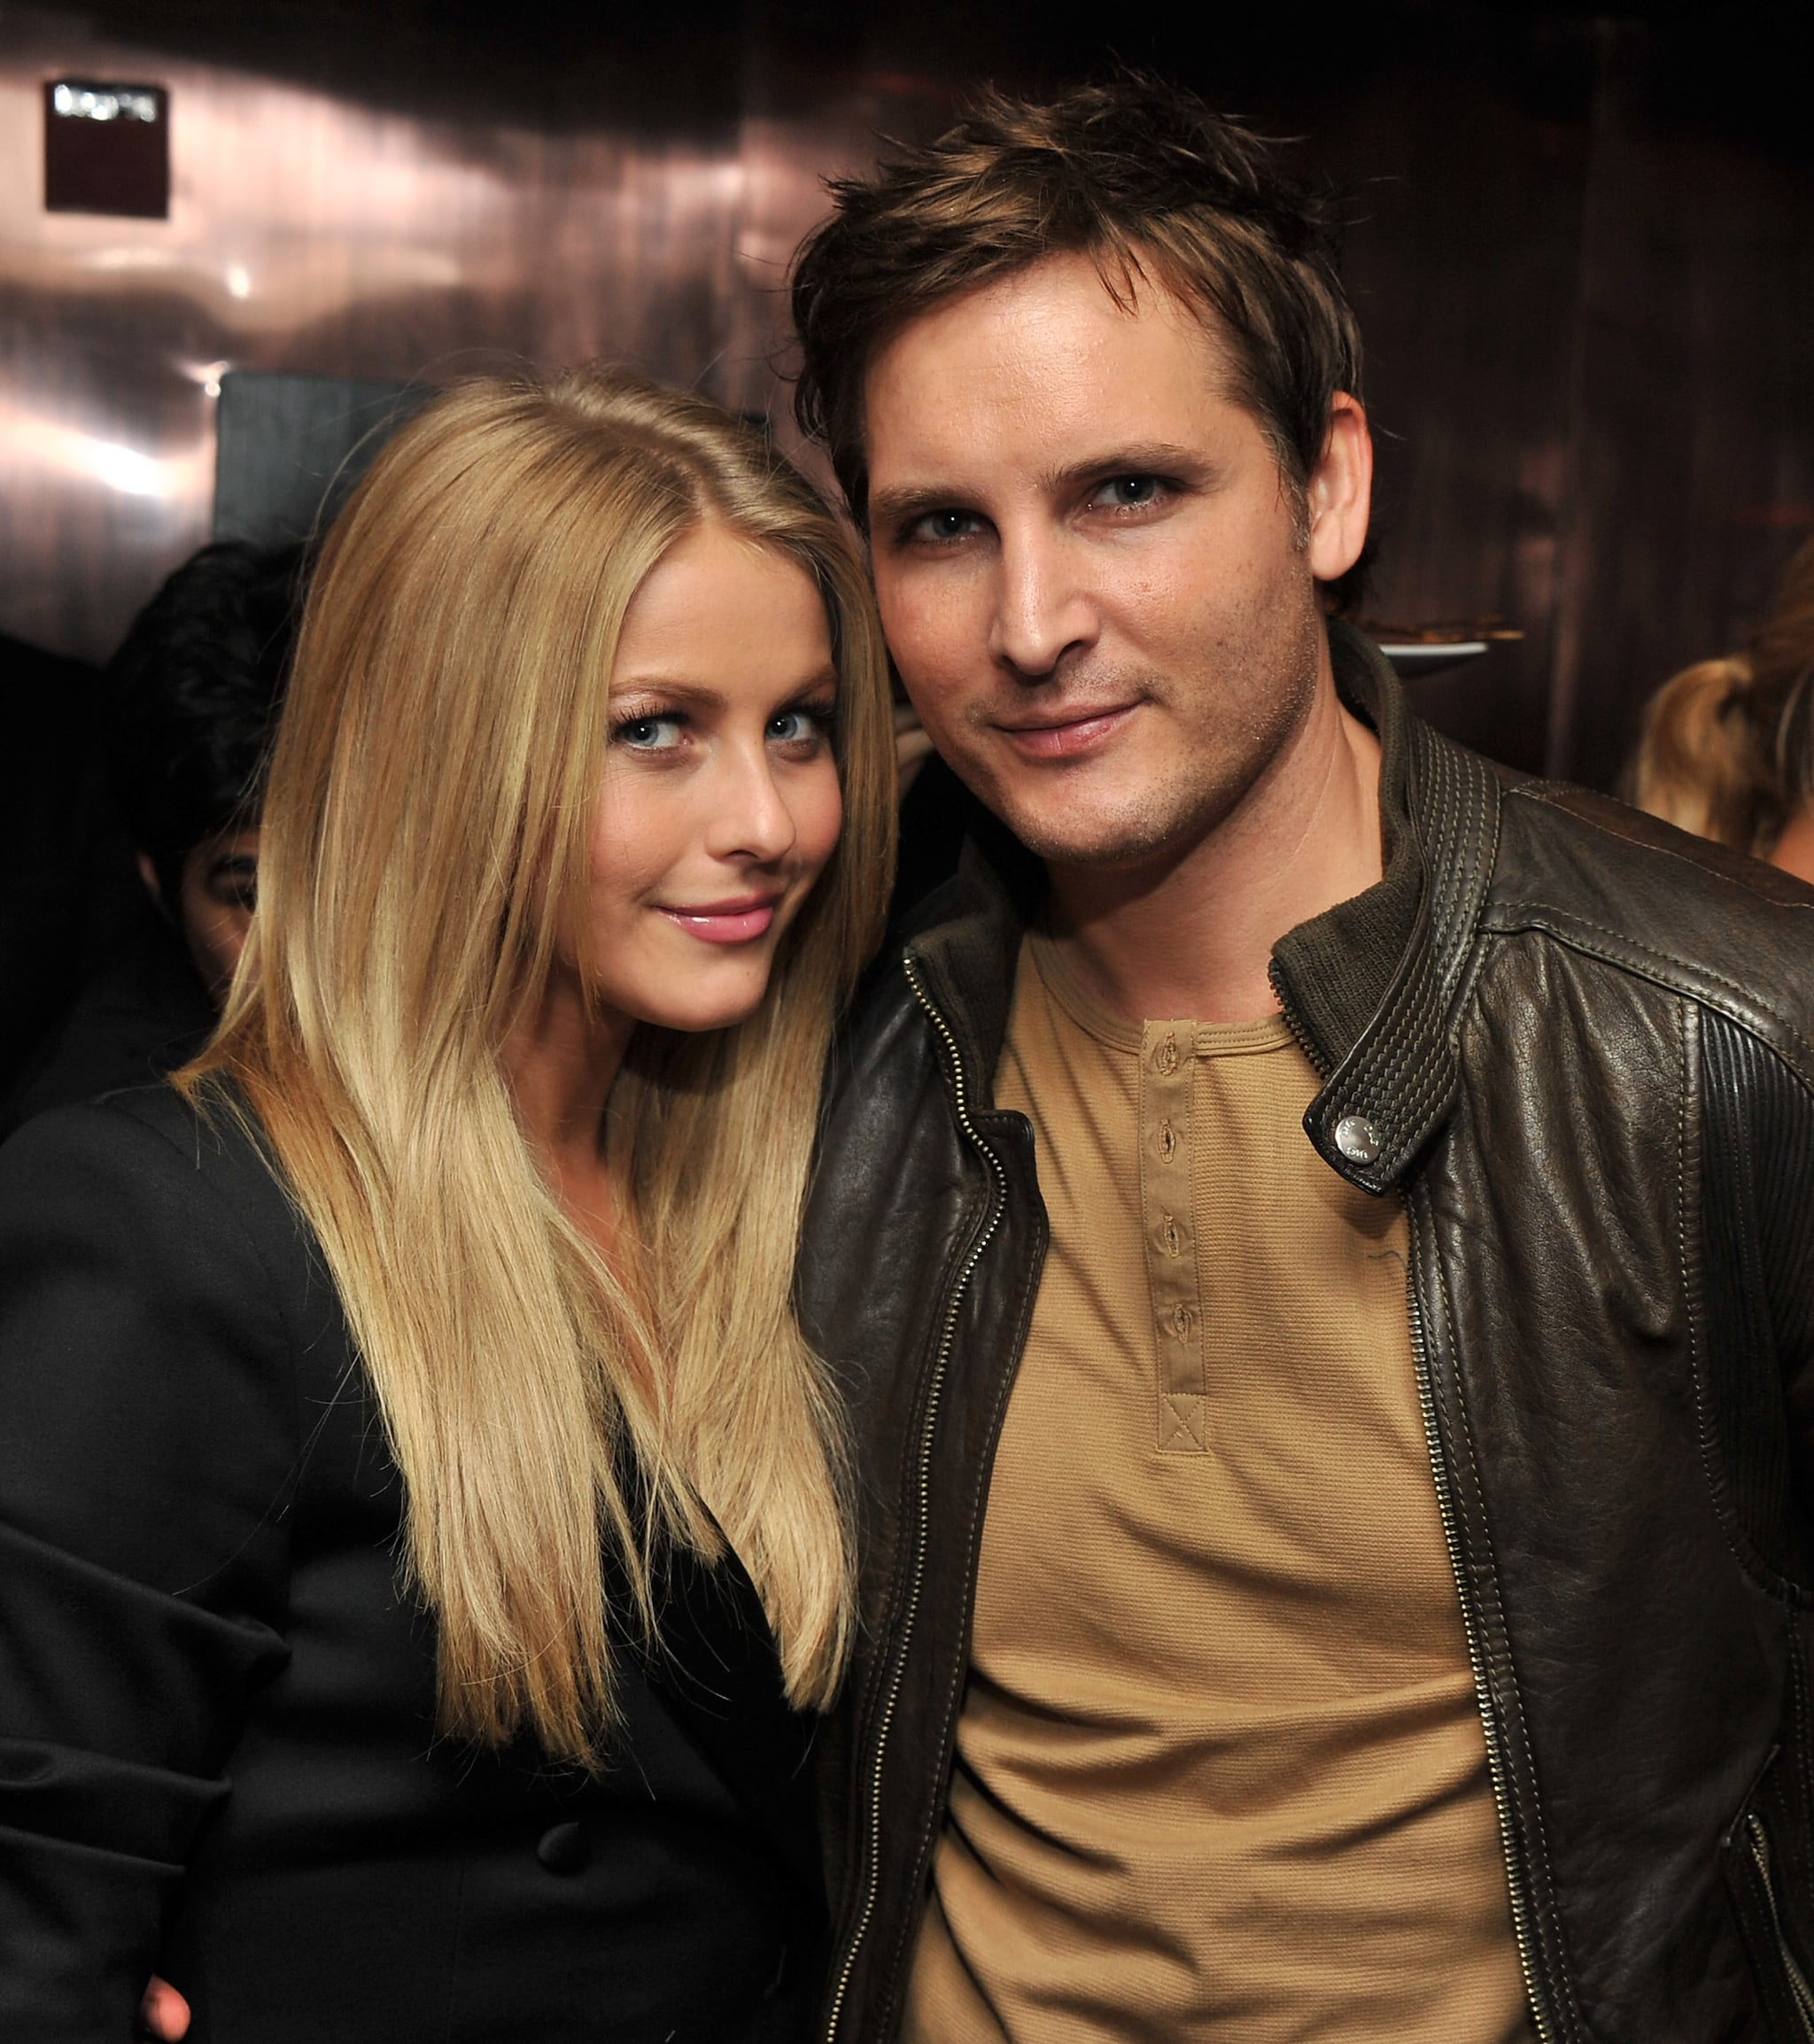 Julianne Hough And Peter Facinelli Caught Up At The